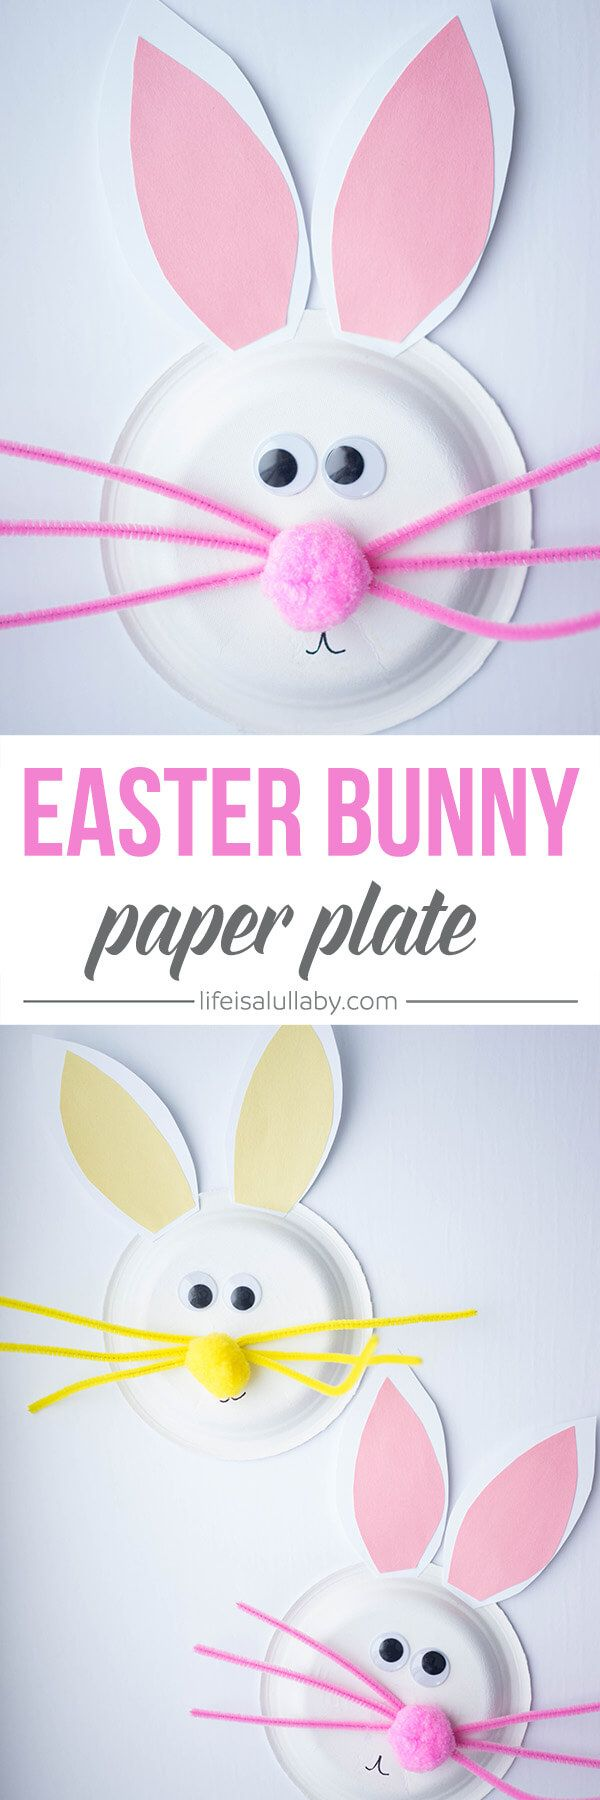 Paper Plate Easter Bunny Craft Easter Pinterest Platos De